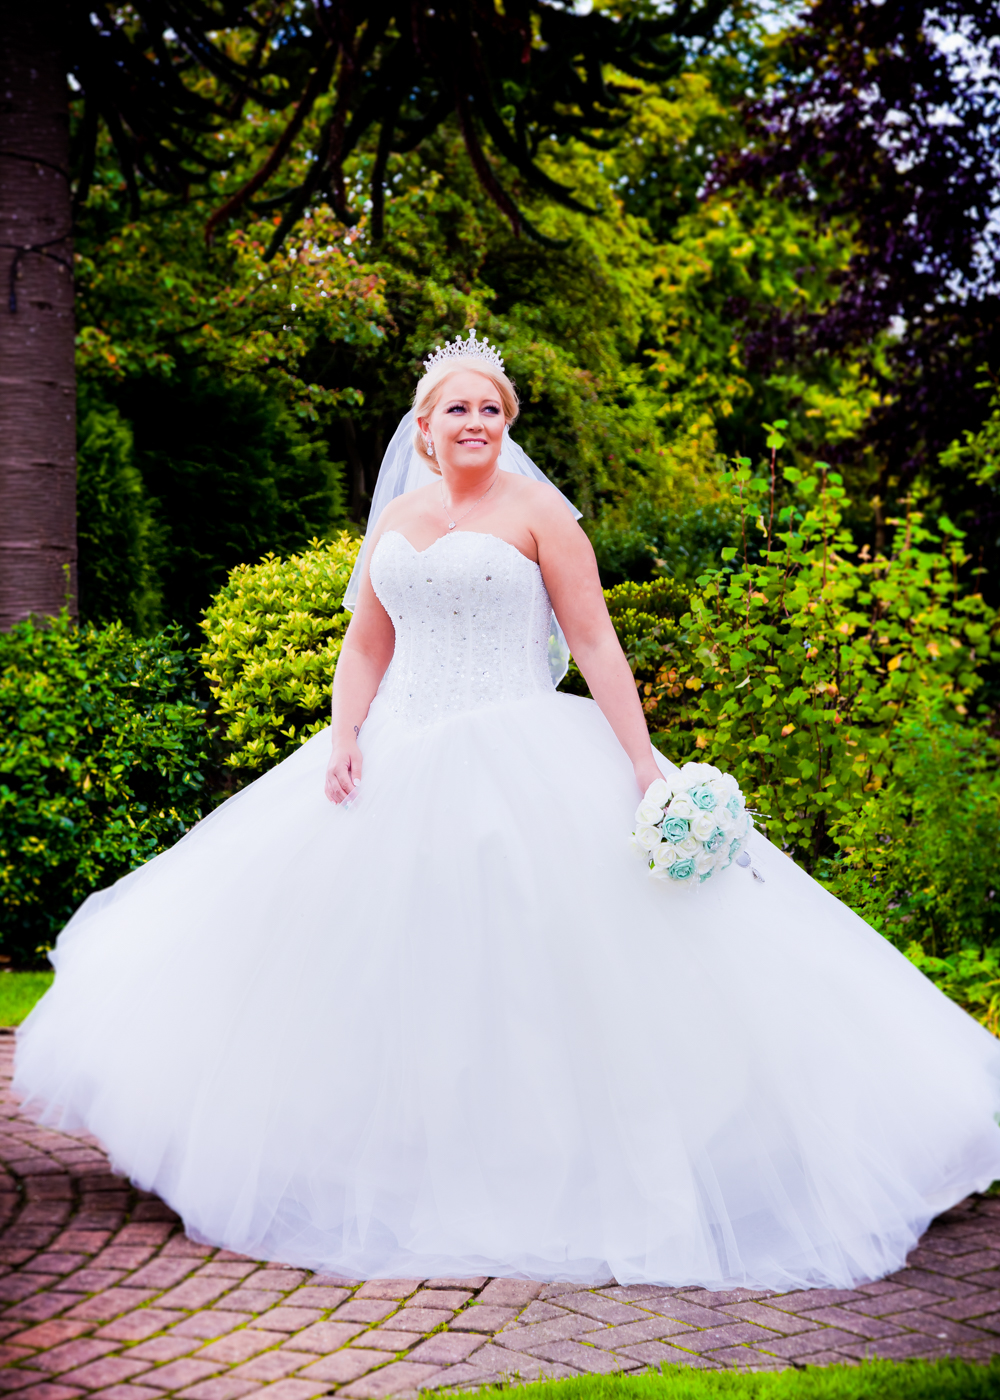 Bride at The Parkmore Hotel in Eaglescliffe